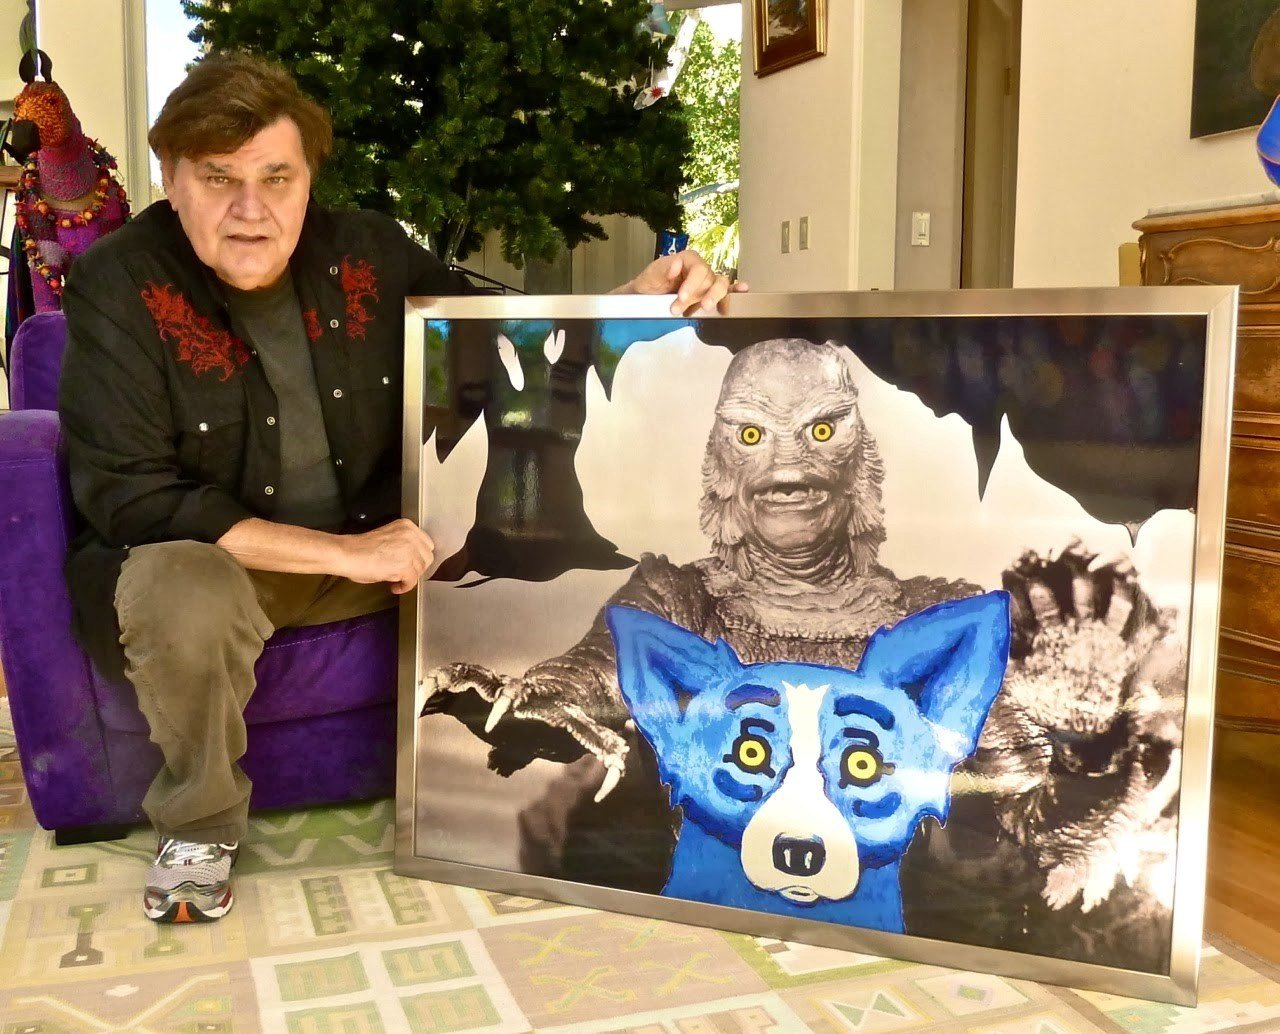 George Rodrigue pictured with one of his paintings from the Blue Dog series, featuring the Loup-garou monster / Courtesy: Ally Hodapp with Bond Moroch